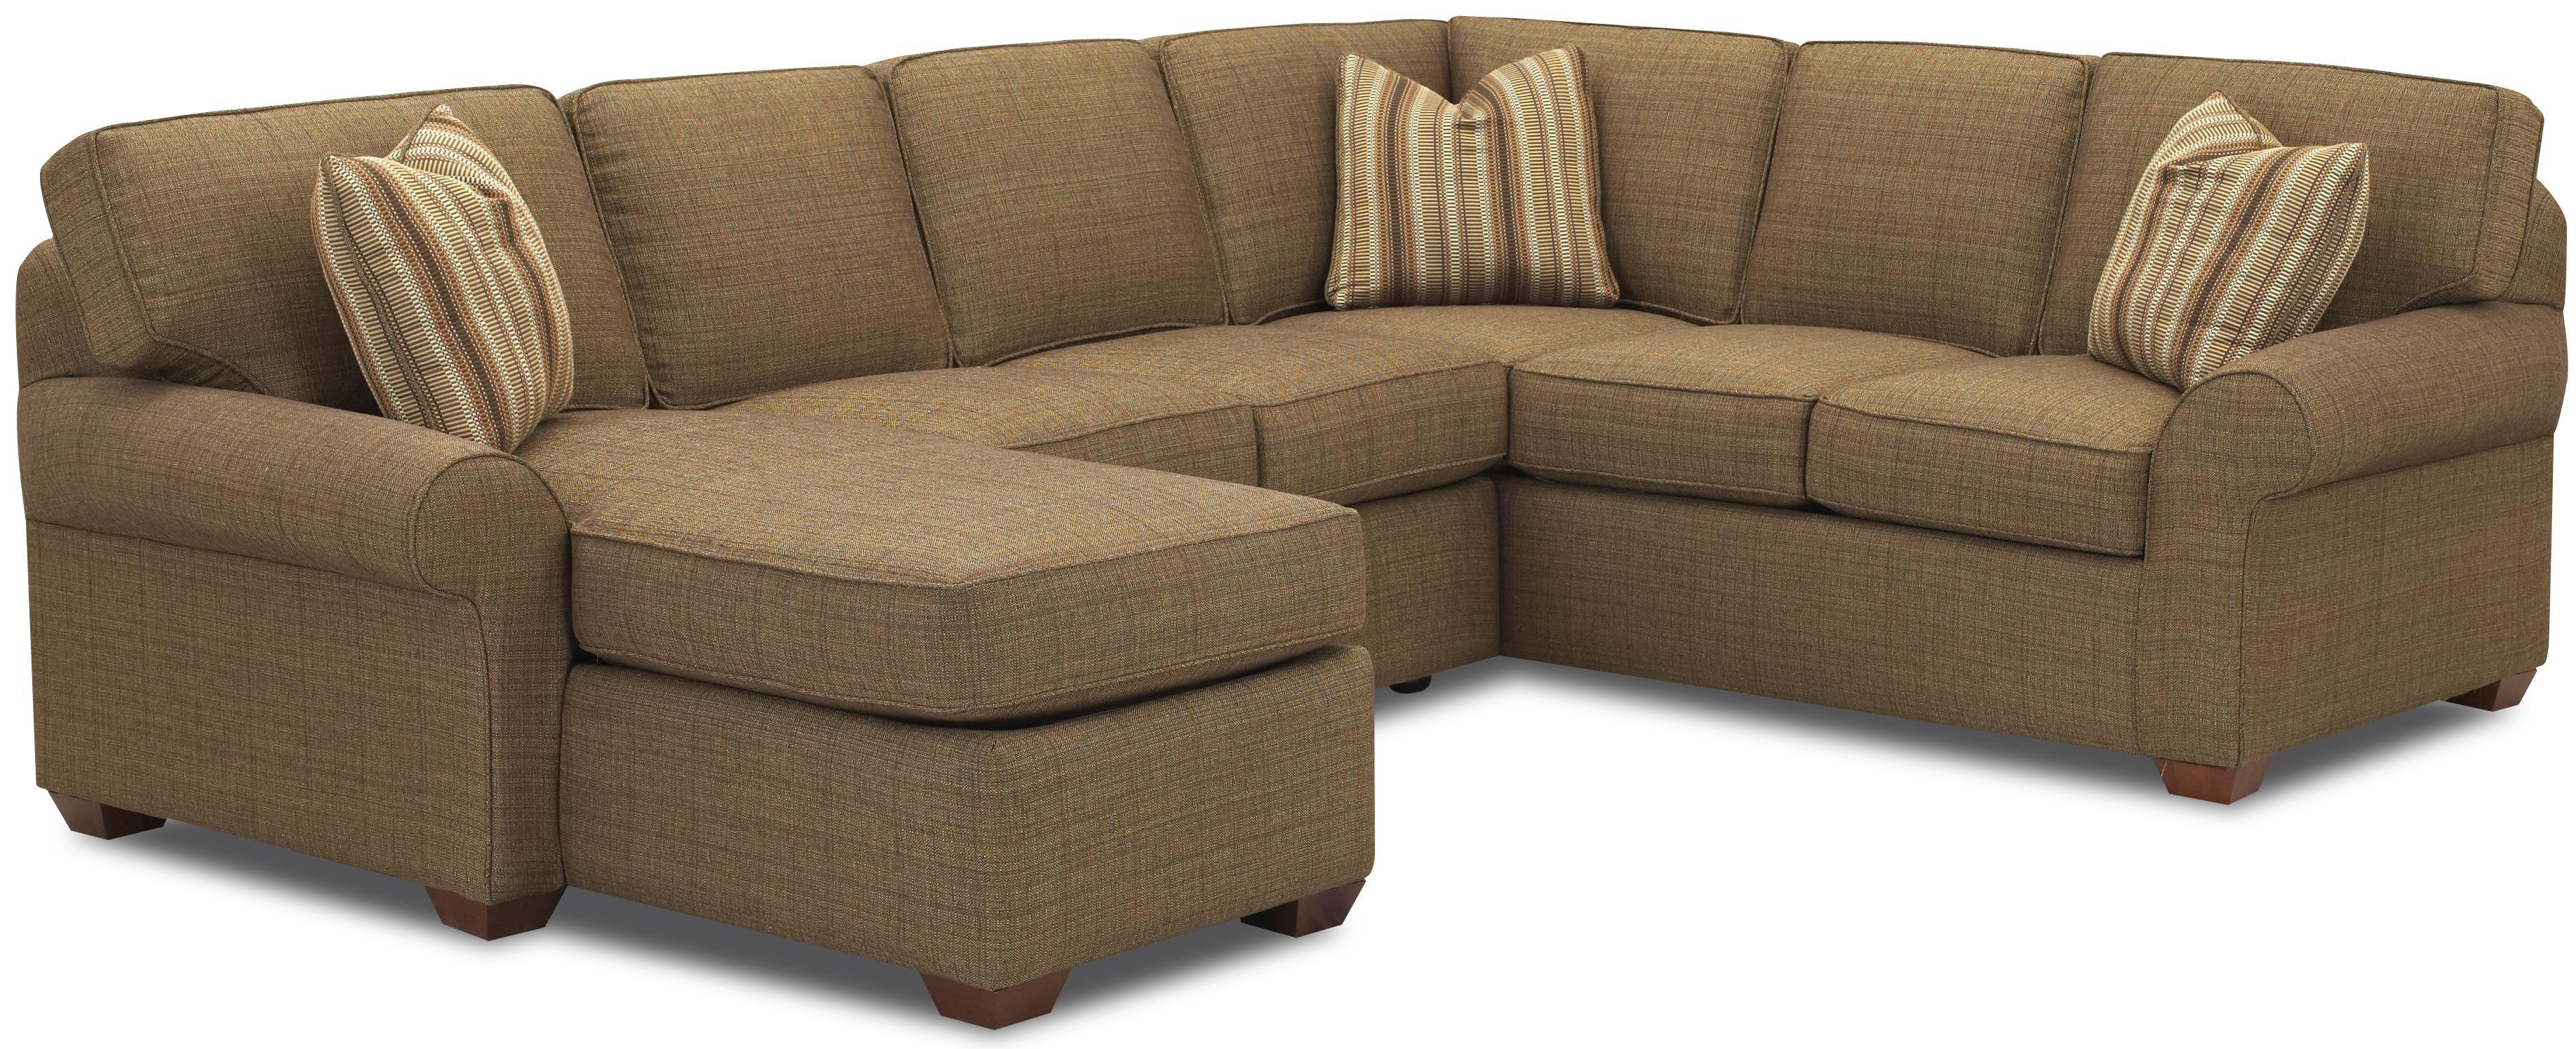 Sectional sofa group with left chaise lounge by klaussner wolf and gardiner wolf furniture Loveseat chaise sectional